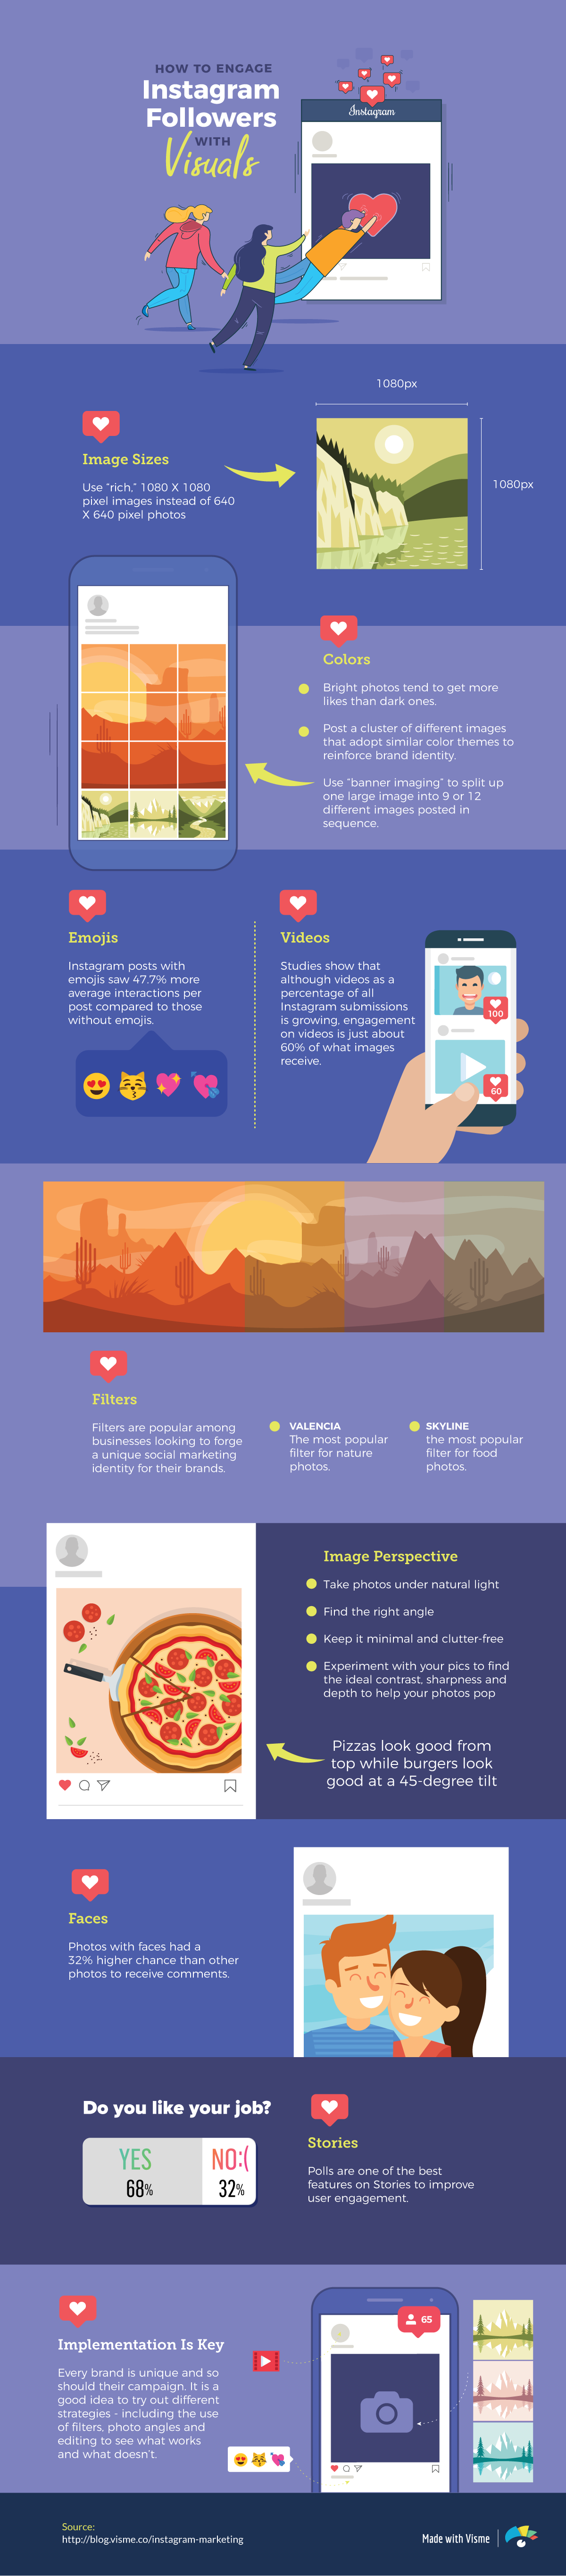 Advertising-Infographics-Instagram-Marketing-Guide-How-To-Engage-Followers Advertising Infographics : Instagram Marketing Guide: How To Engage Followers With Visuals